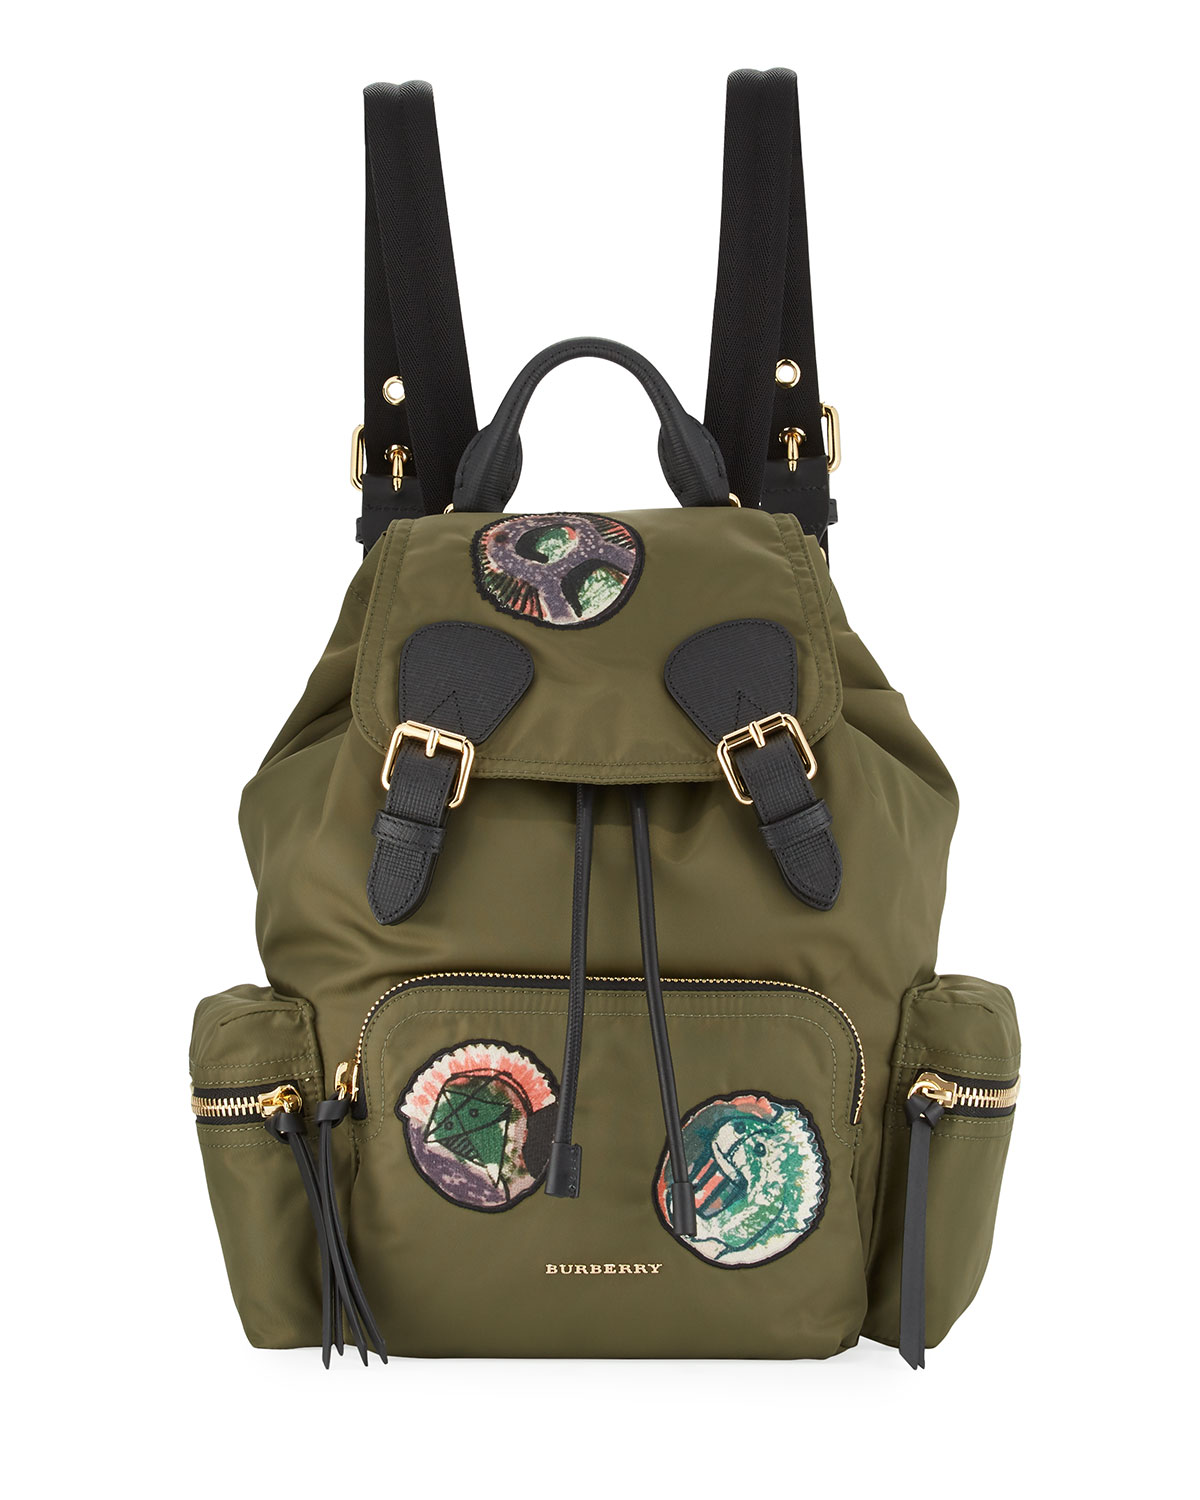 Burberry Prorsum Nylon Patches Backpack 598b7cc1f4664